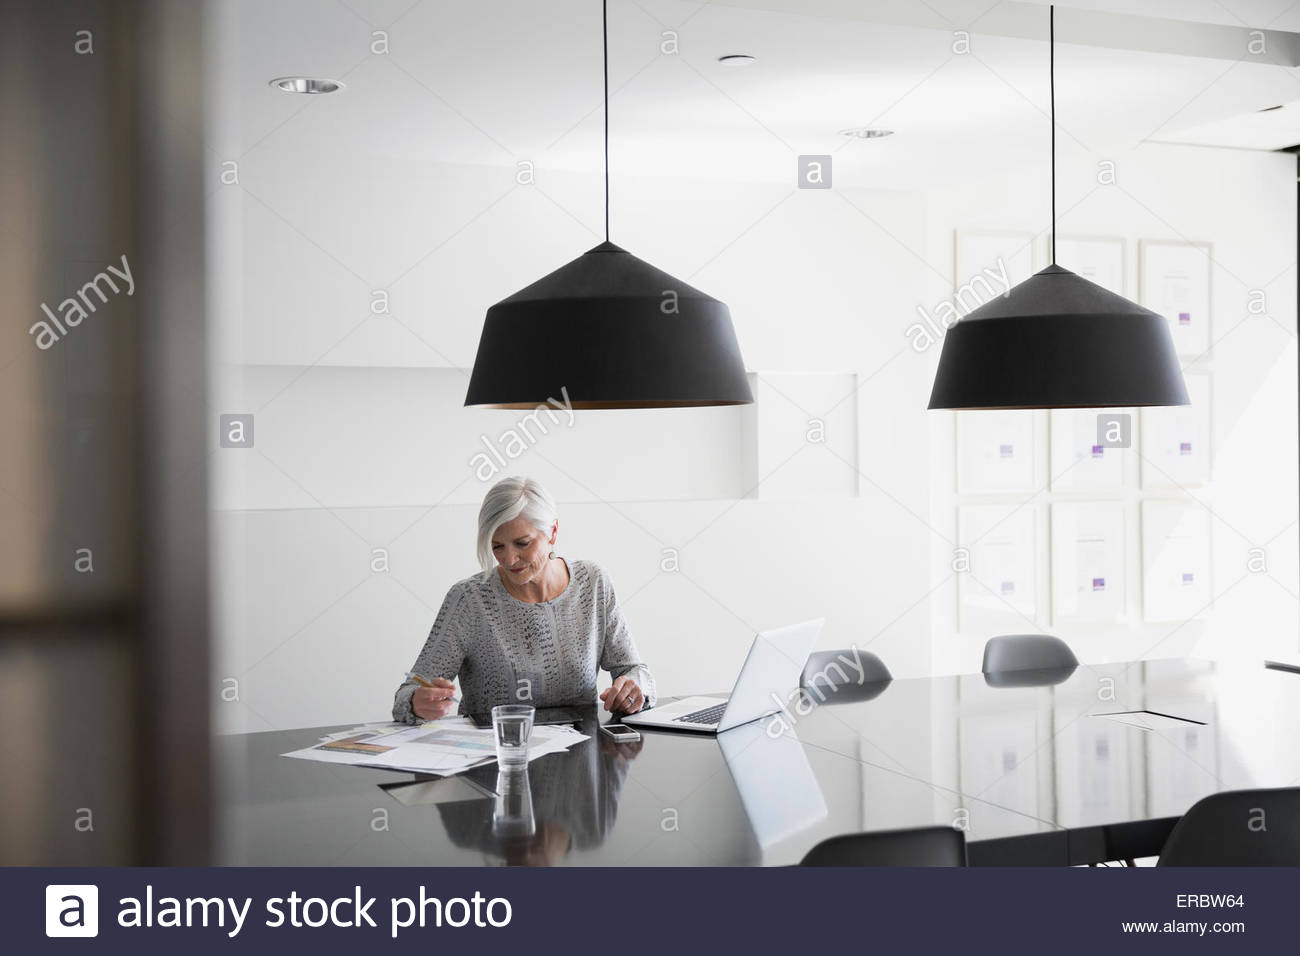 Designer reviewing plans at laptop in conference room - Stock Image